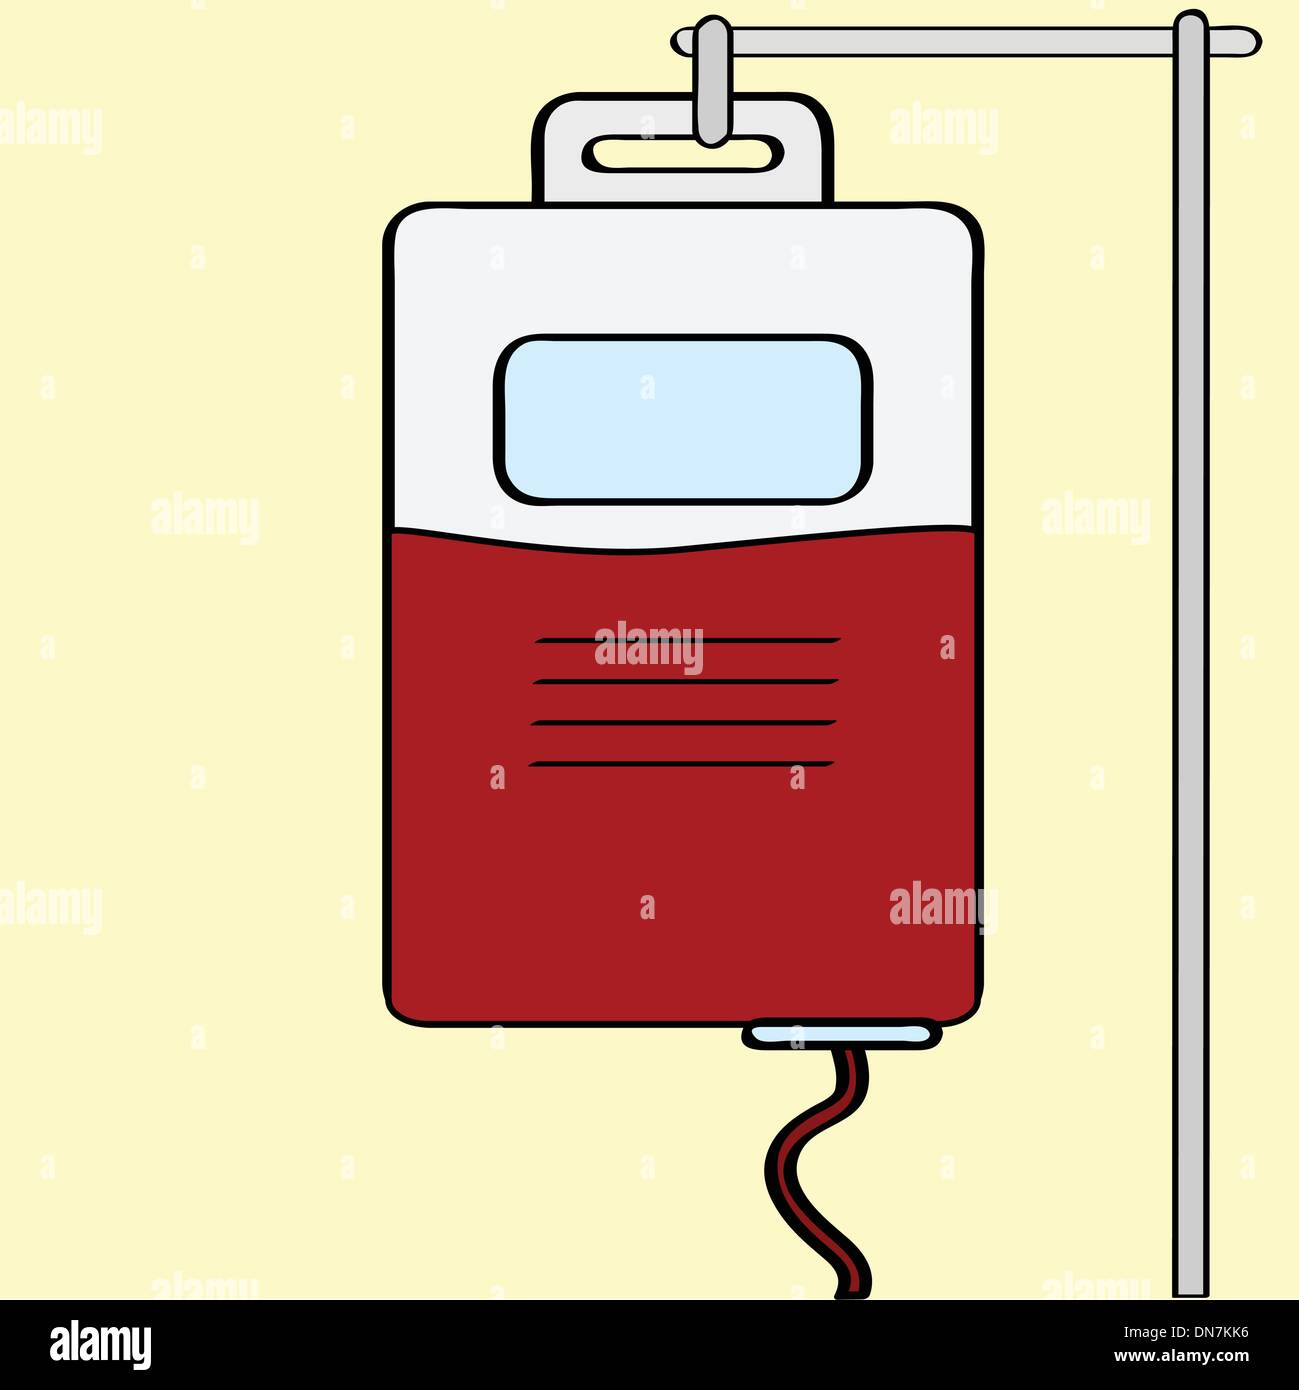 Blood transfusion - Stock Vector